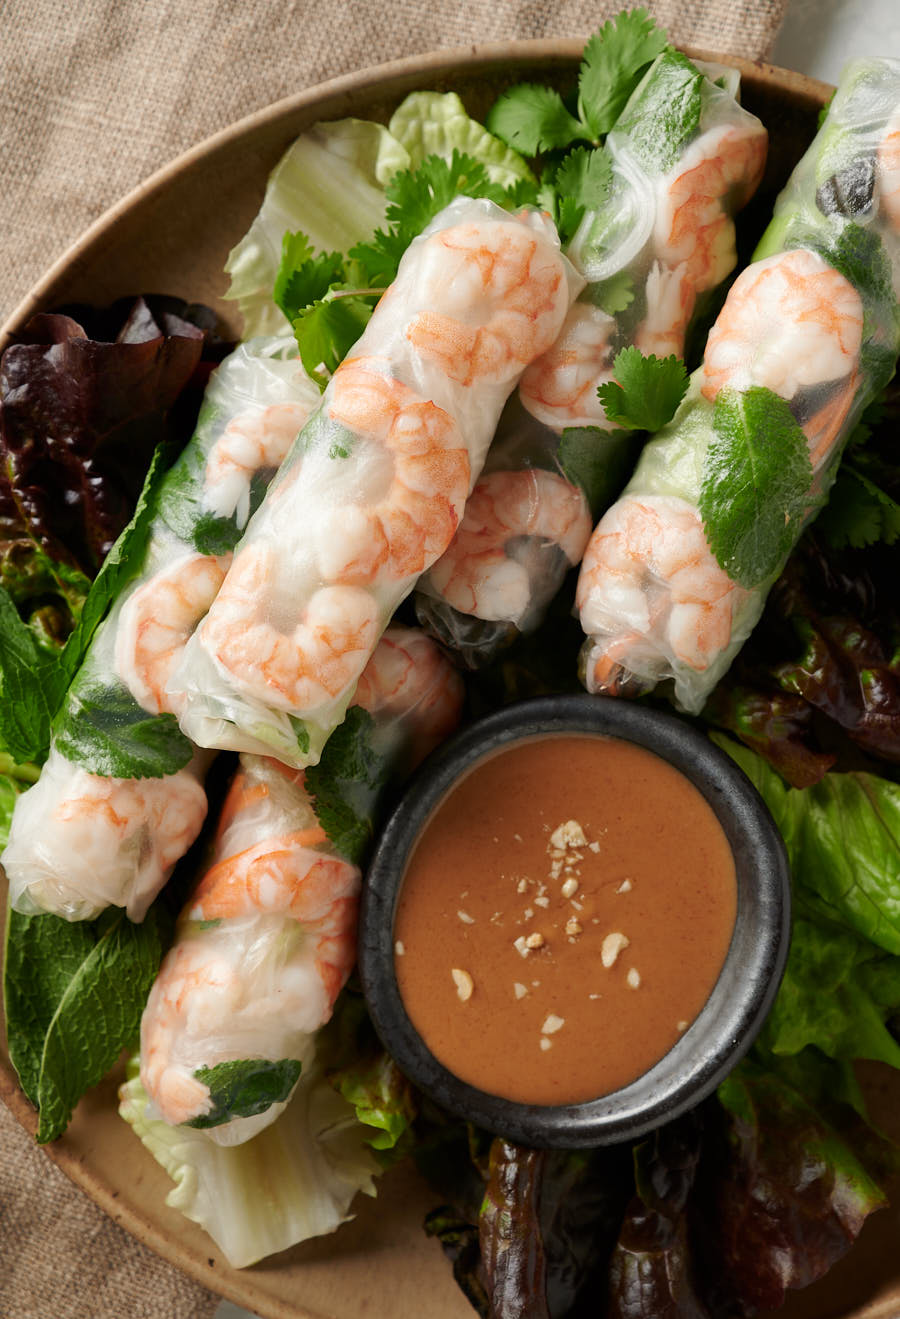 Vietnamese spring rolls with peanut sauce on a platter from above.